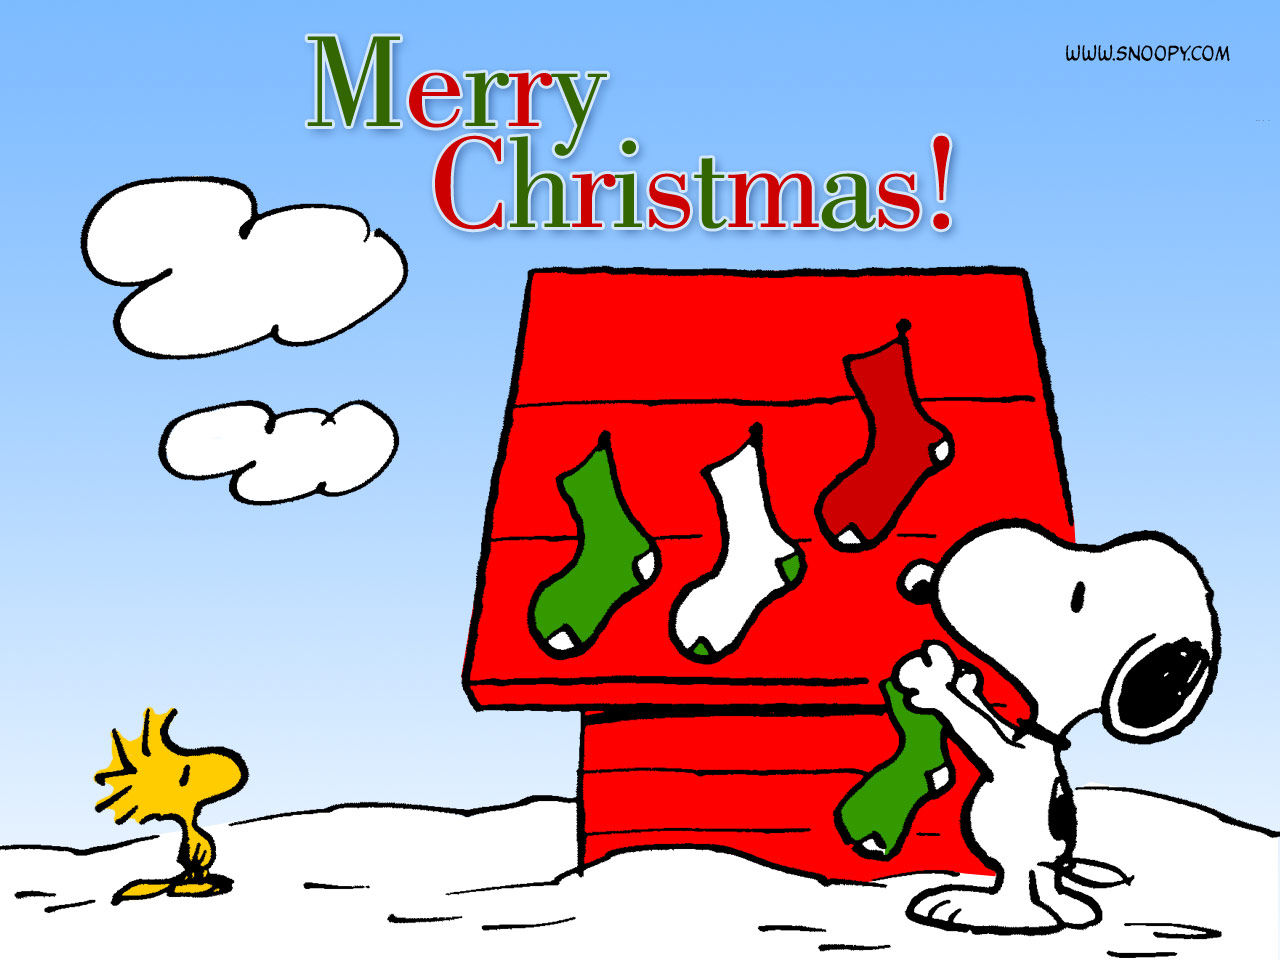 Snoopy Merry Christmas Images.Snoopy Merry Christmas Image Quote Pictures Photos And Images For